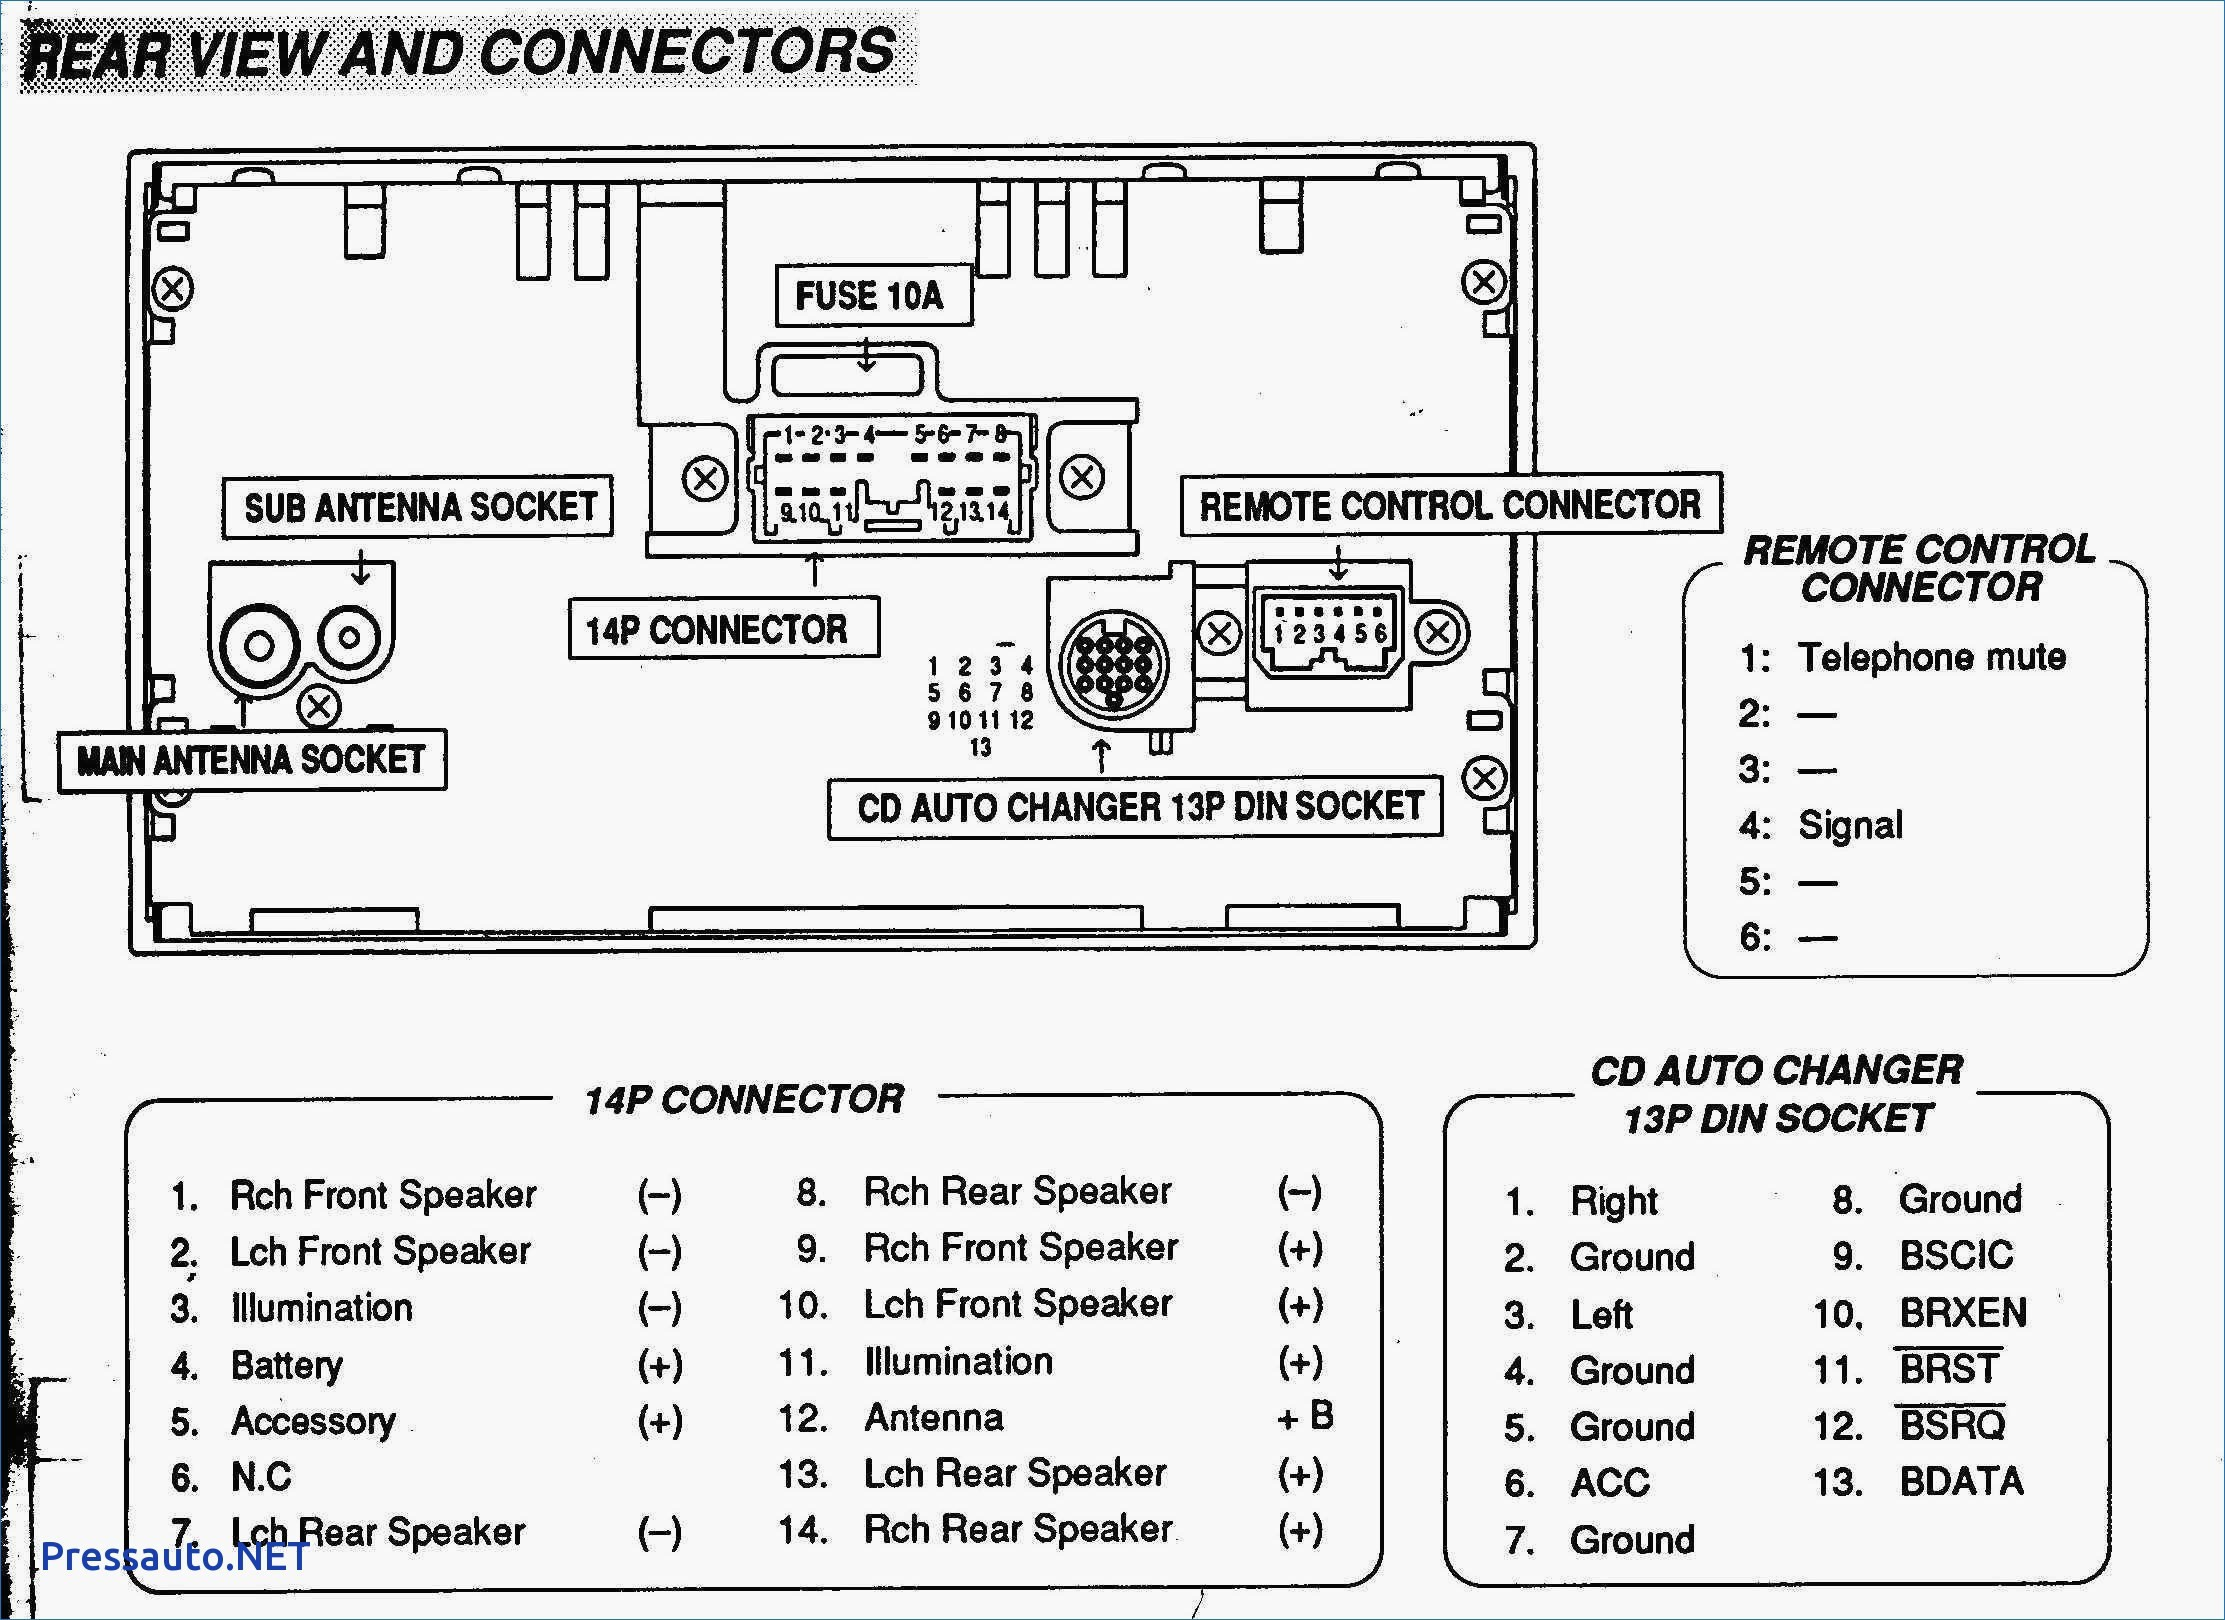 2000 Volkswagen Passat Engine Diagram 2001 Passat Fuse Box Another Blog About Wiring Diagram • Of 2000 Volkswagen Passat Engine Diagram